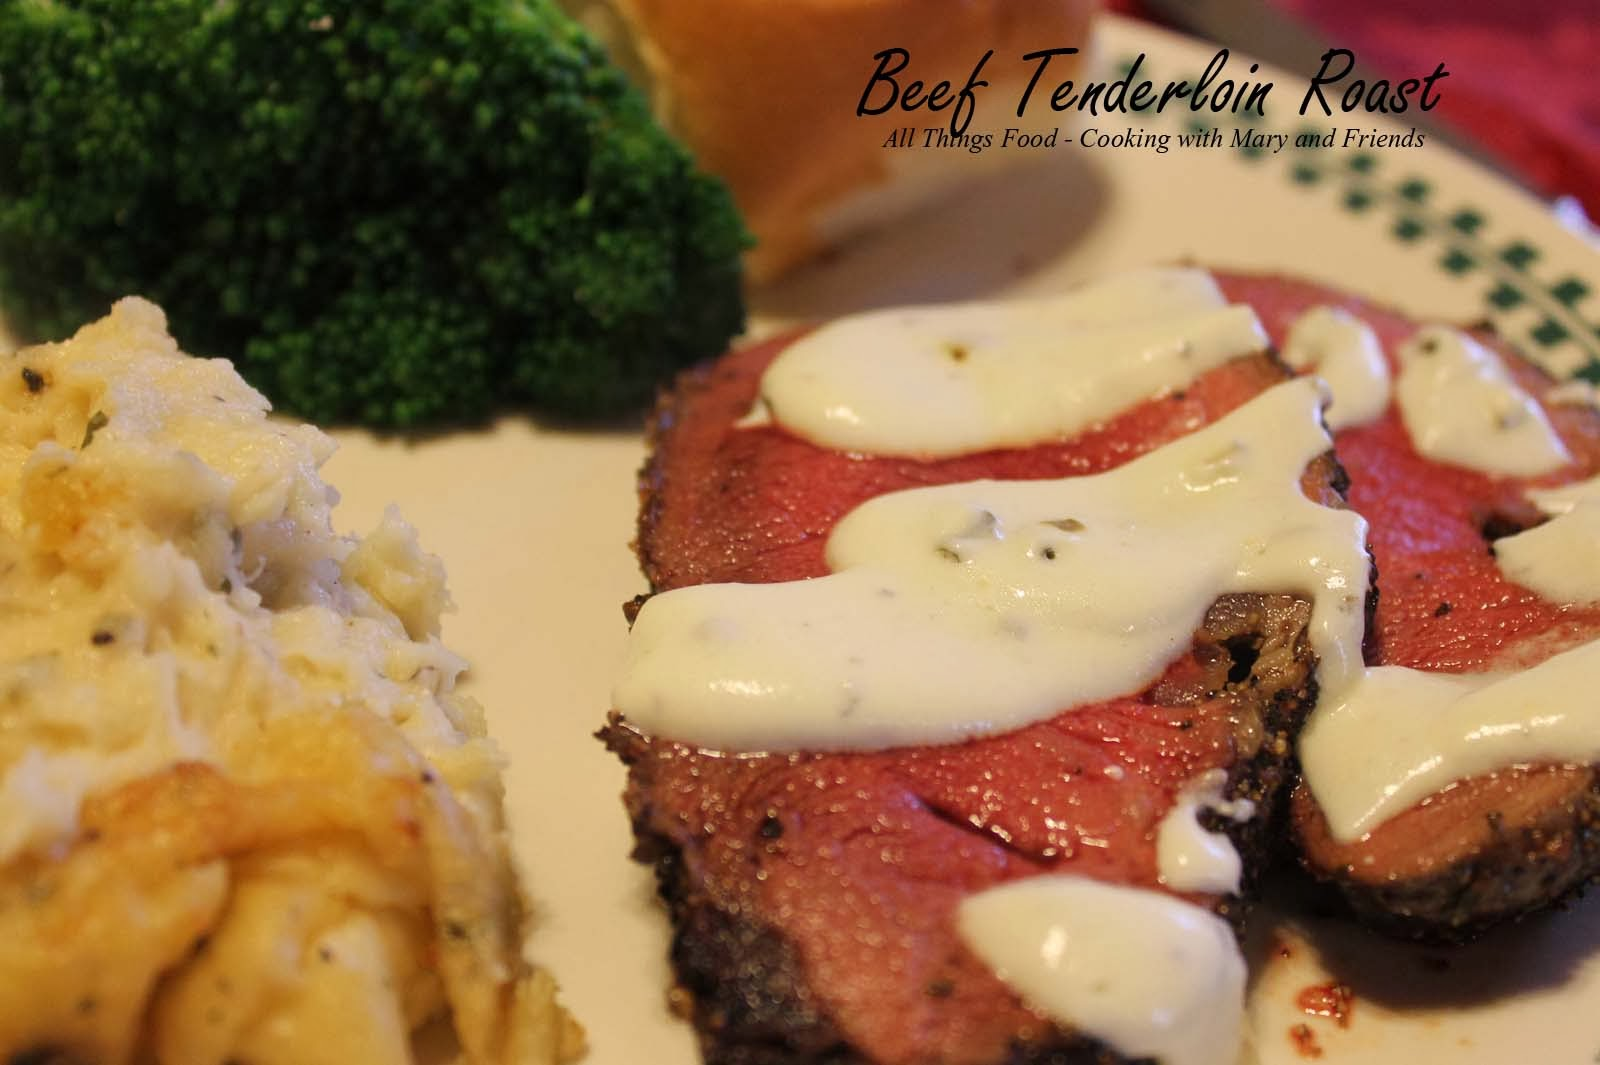 Cooking with mary and friends roasted beef tenderloin